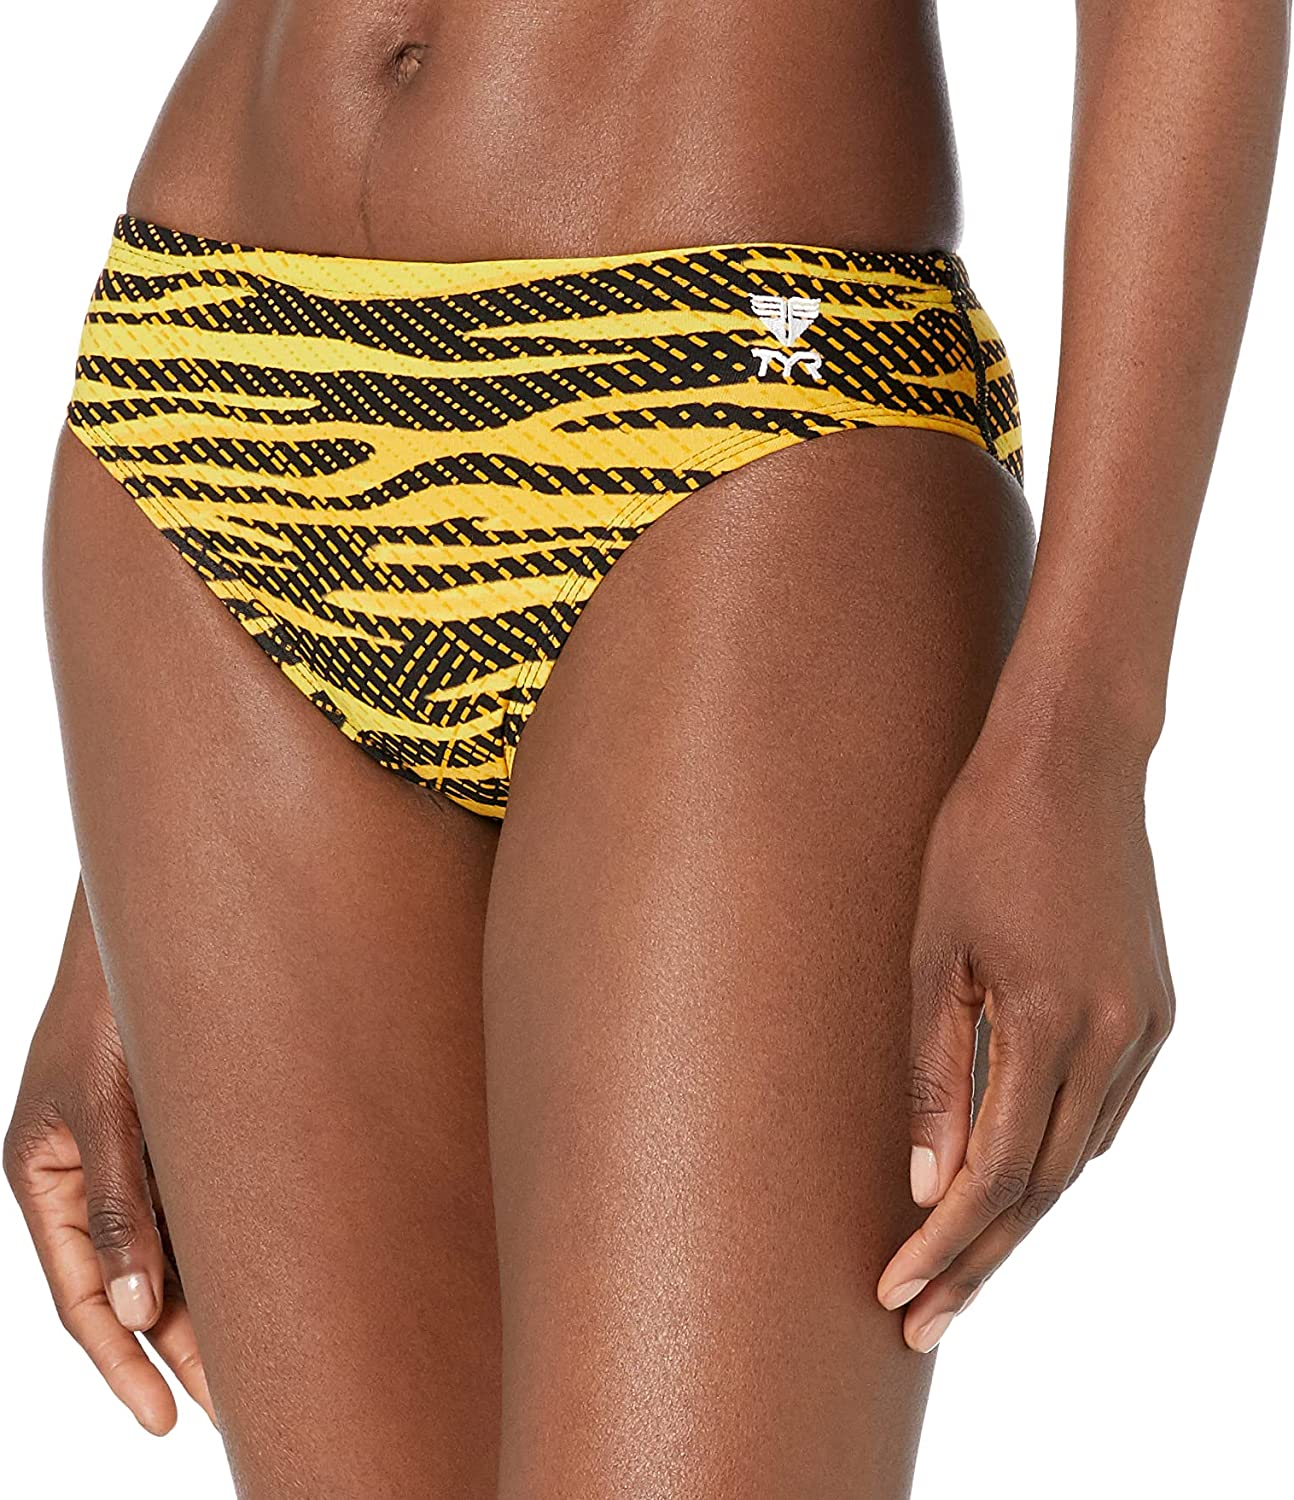 TYR RCR7A838 Al sold OFFicial out. Crypsis Alvr Racer 38 Gold Black Swimsuit